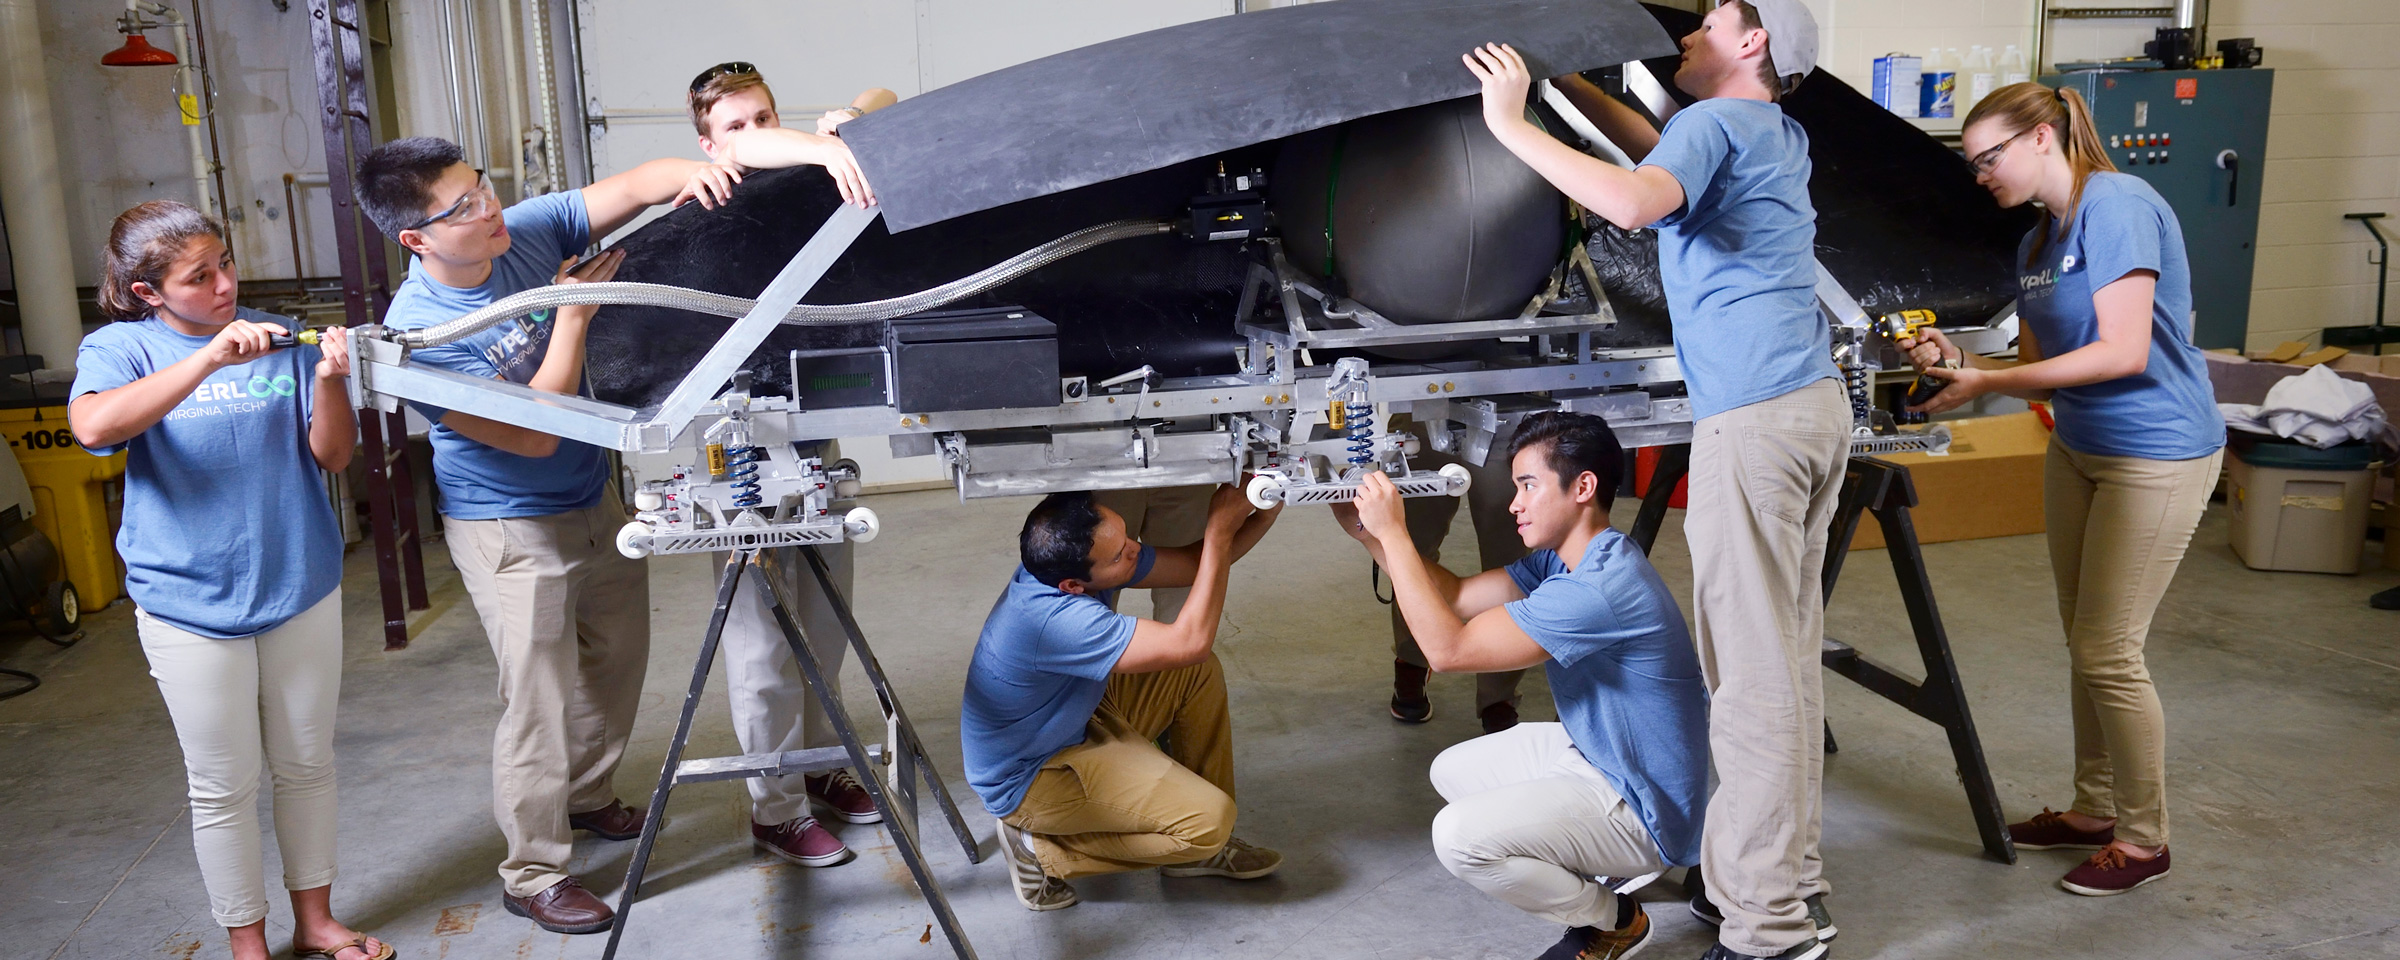 Students working on a Hyperloop vehicle